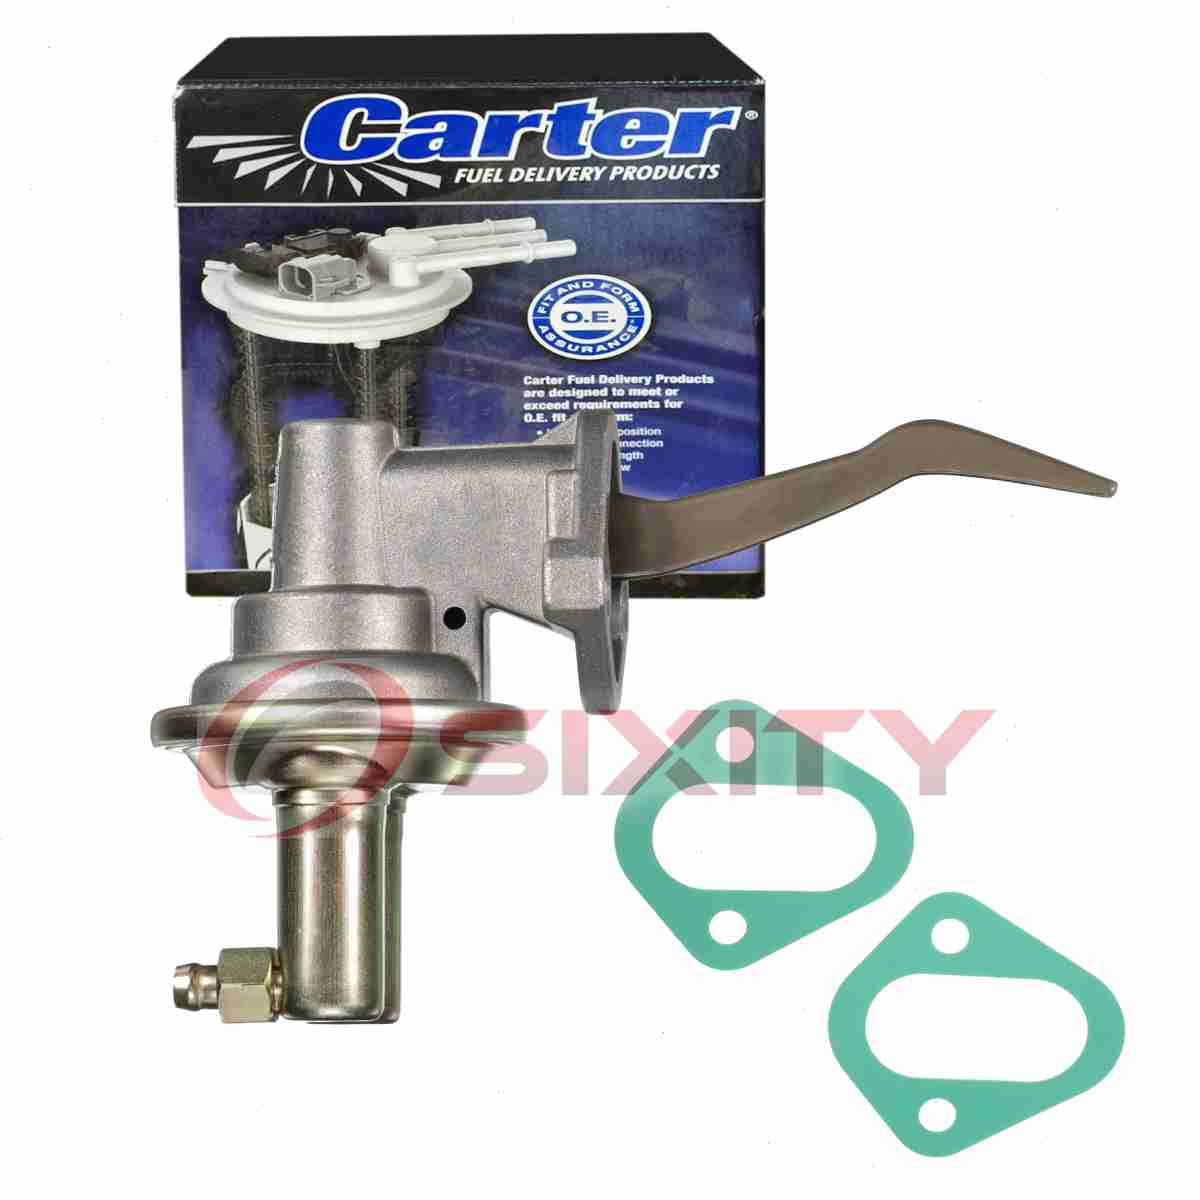 Carter Fuel Pump for 1967-1969 Ford Mustang 6.4L V8 Mechanical Gas Diesel wn